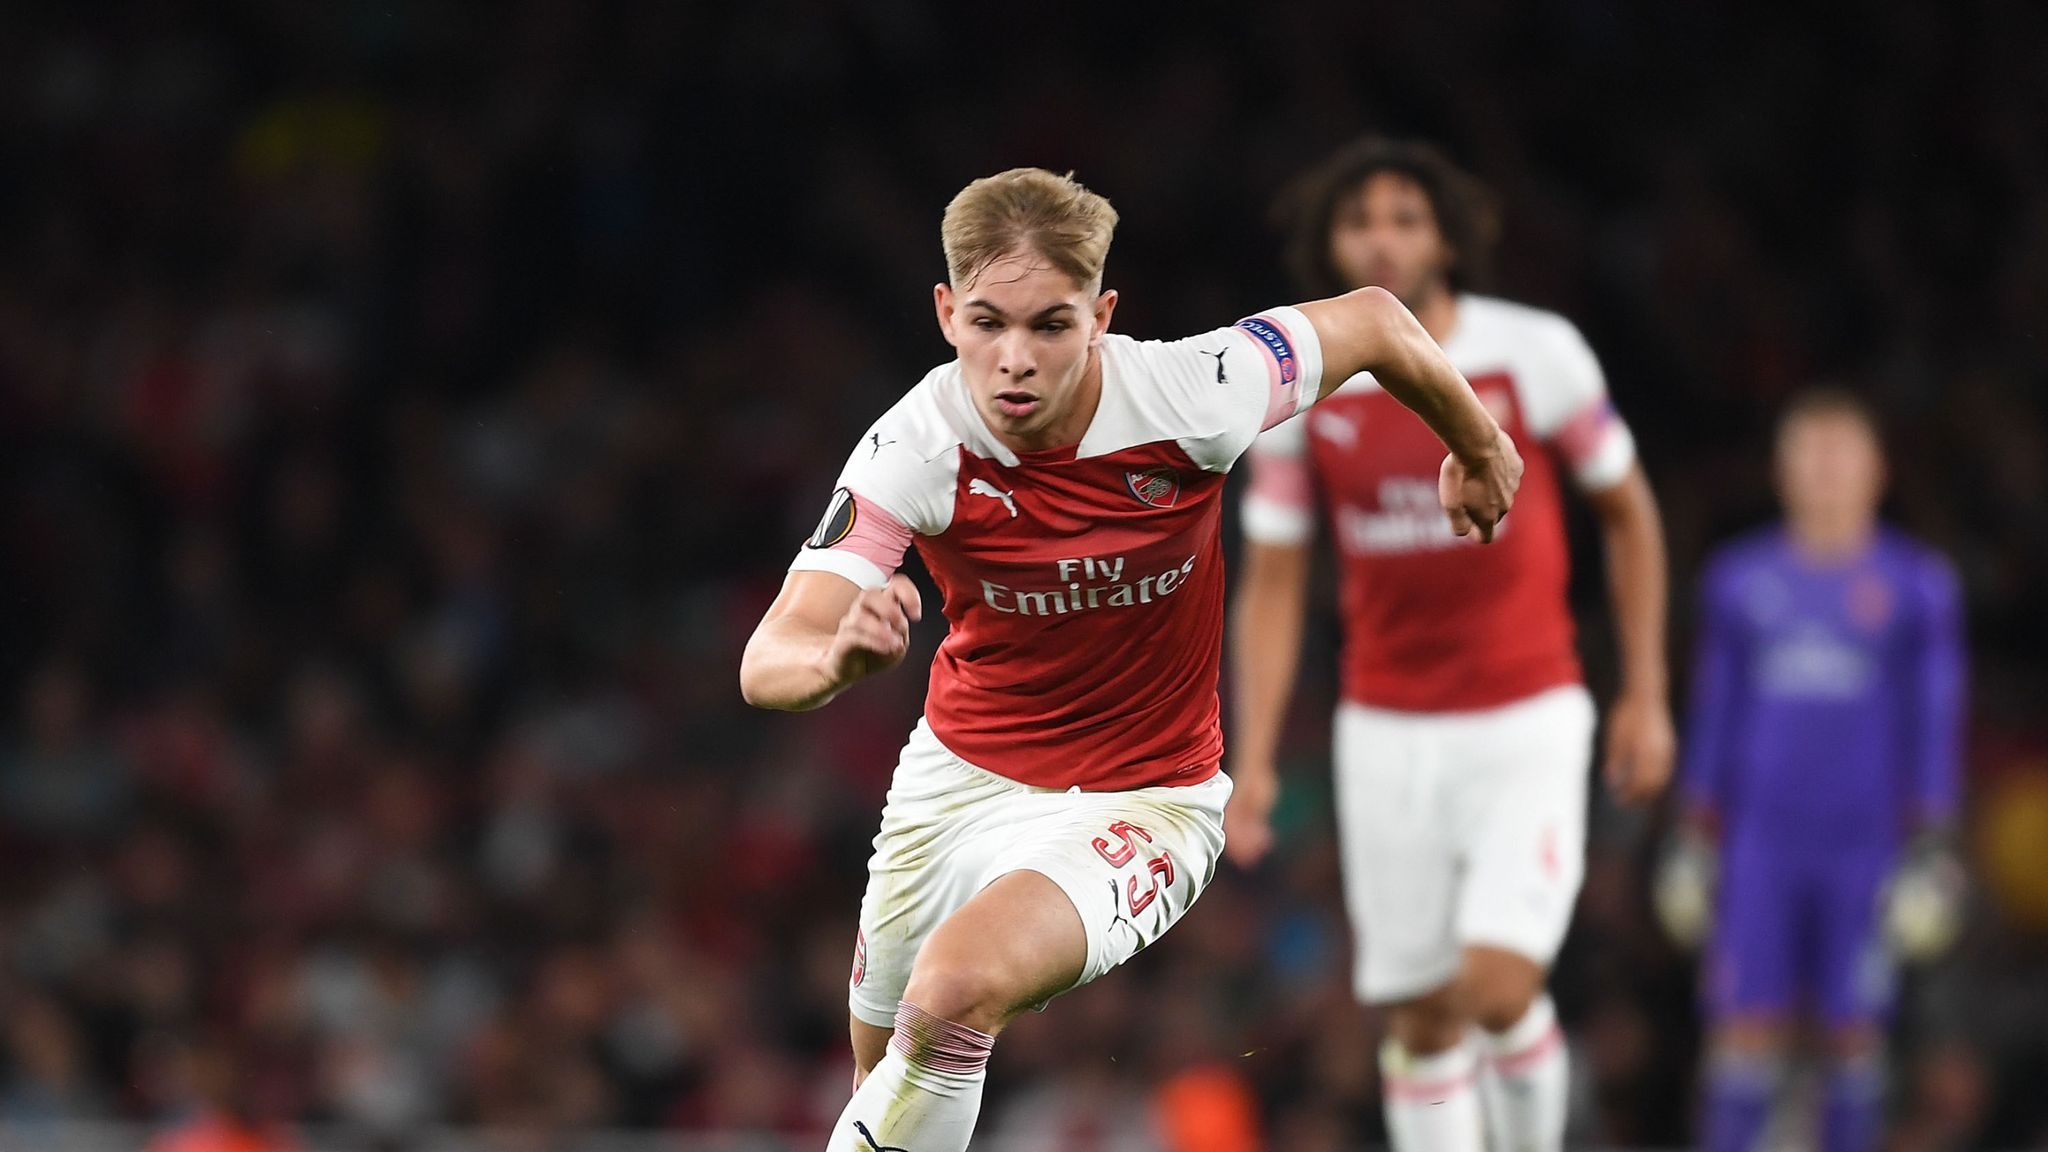 Emile Smith Rowe Gives Arsenal Debut Shirt To His Mum Football News Sky Sports